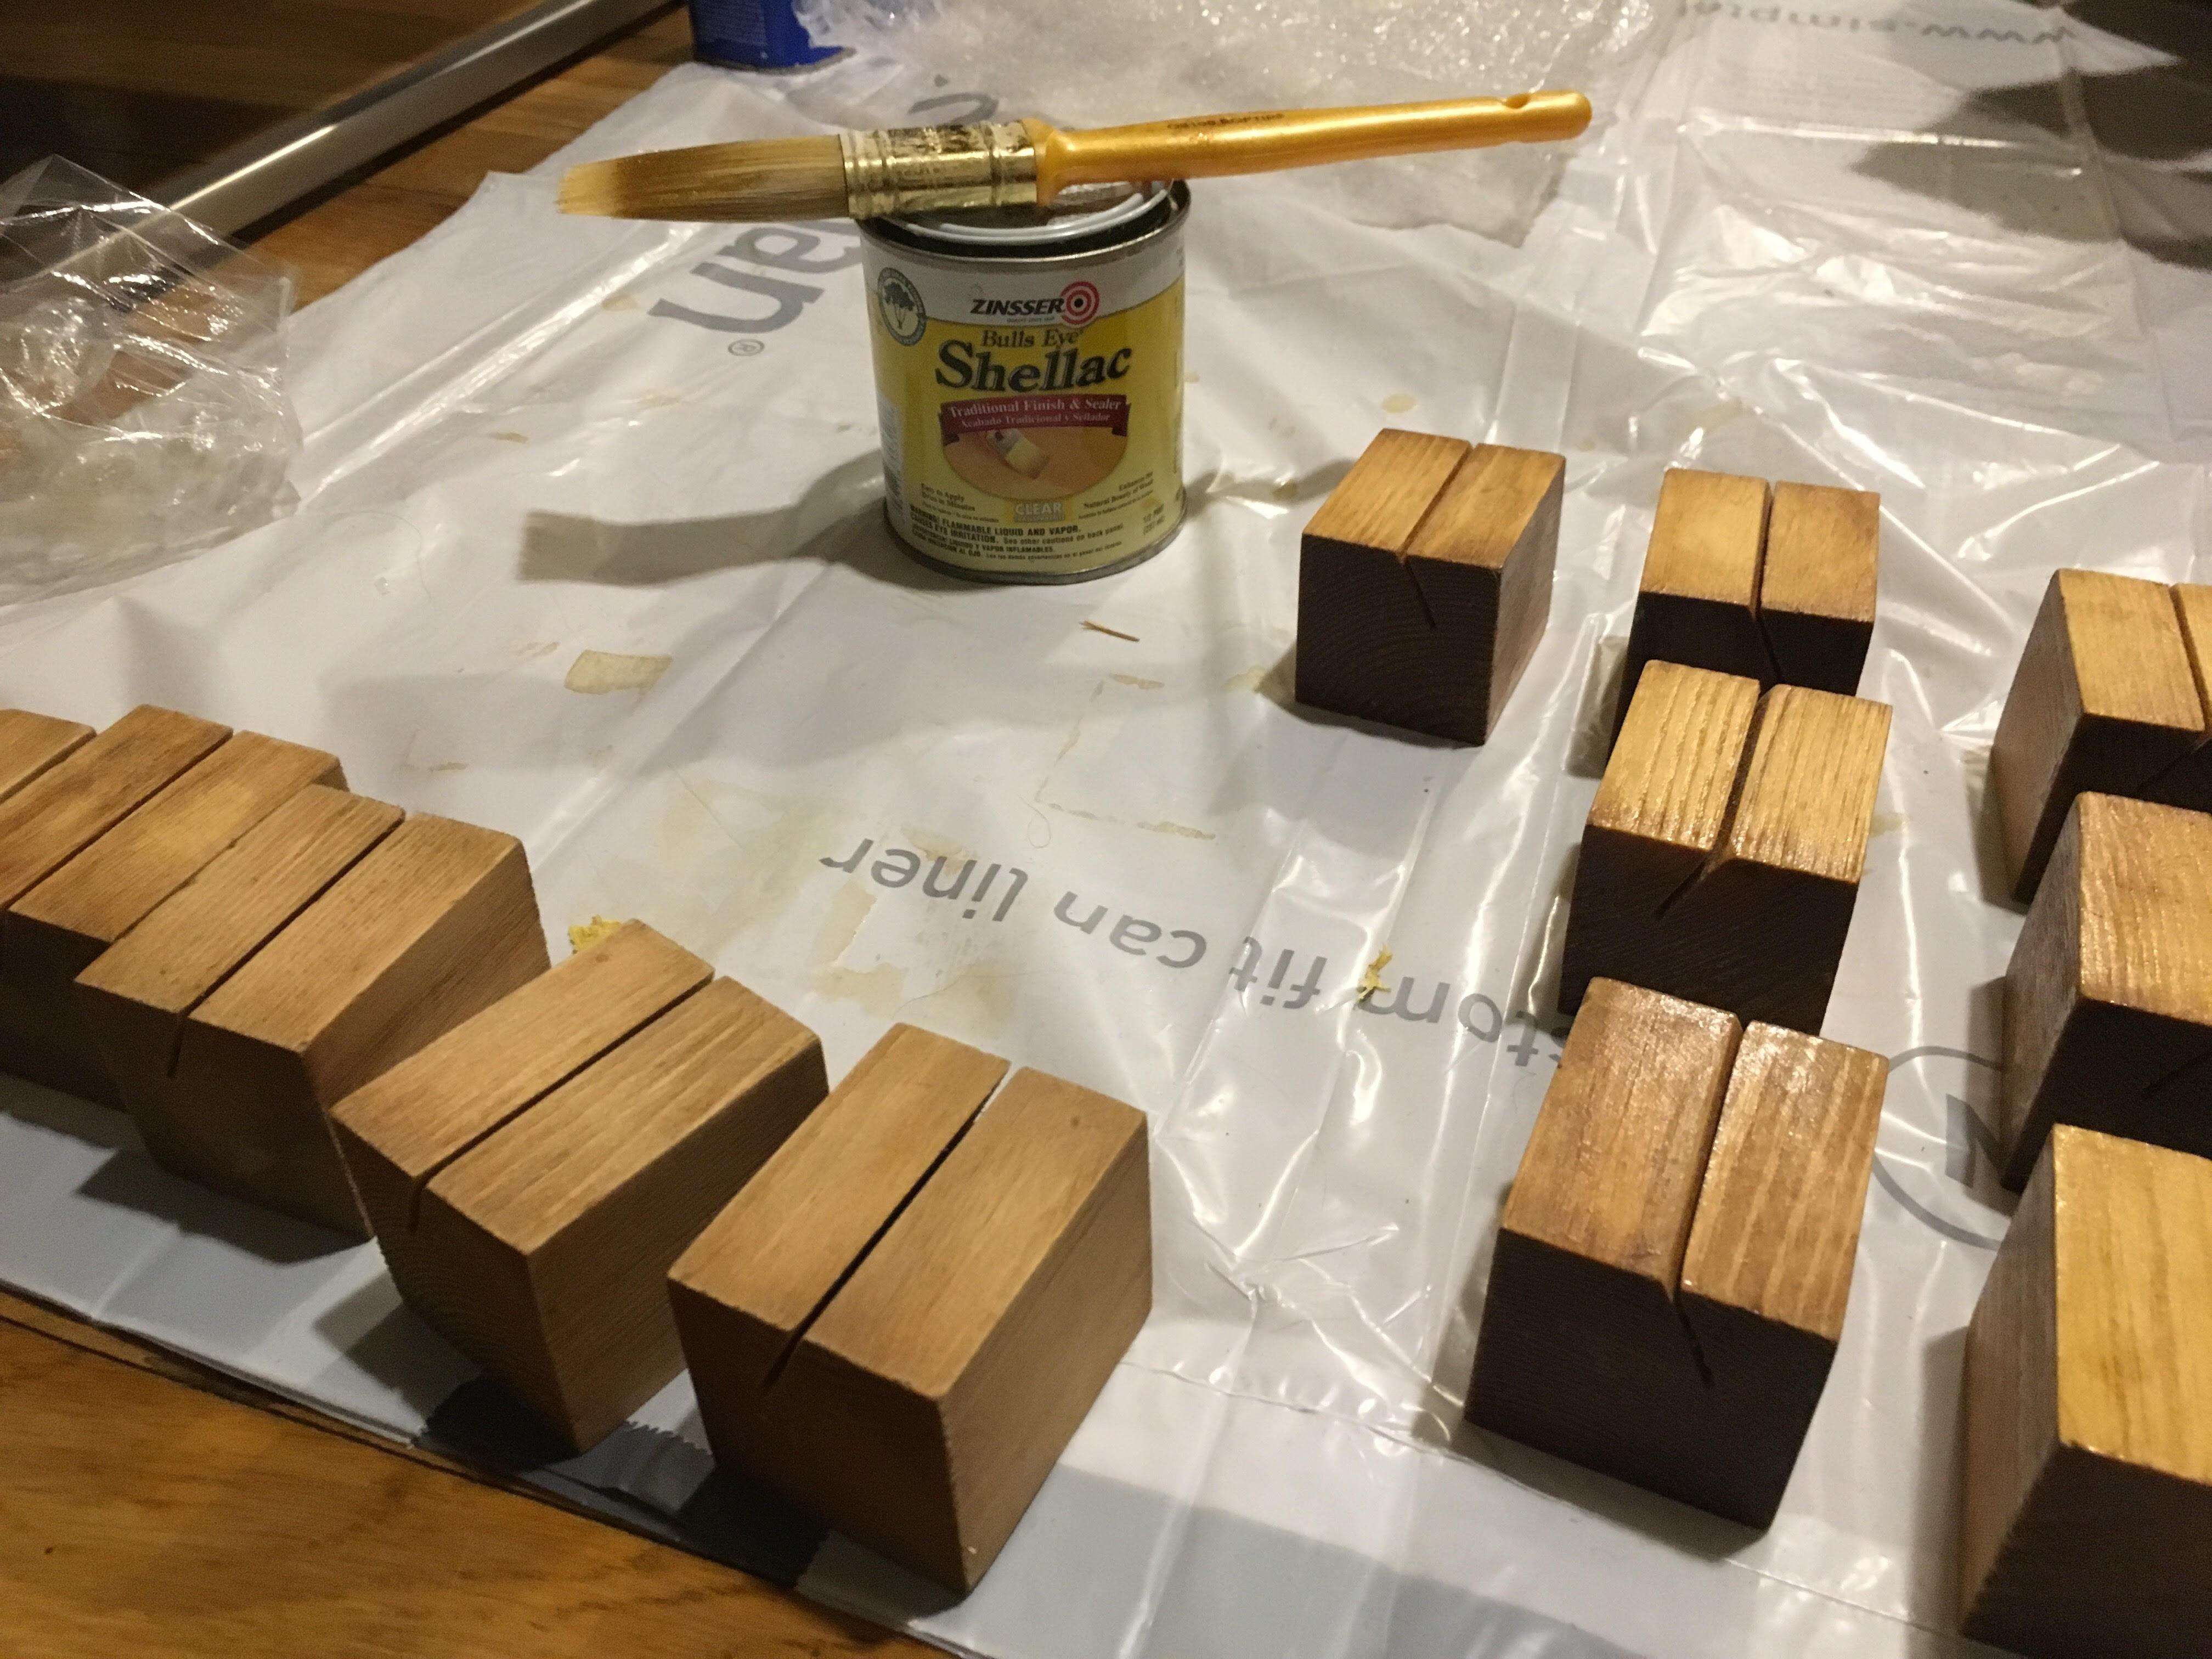 Sanding and staining wooden blocks